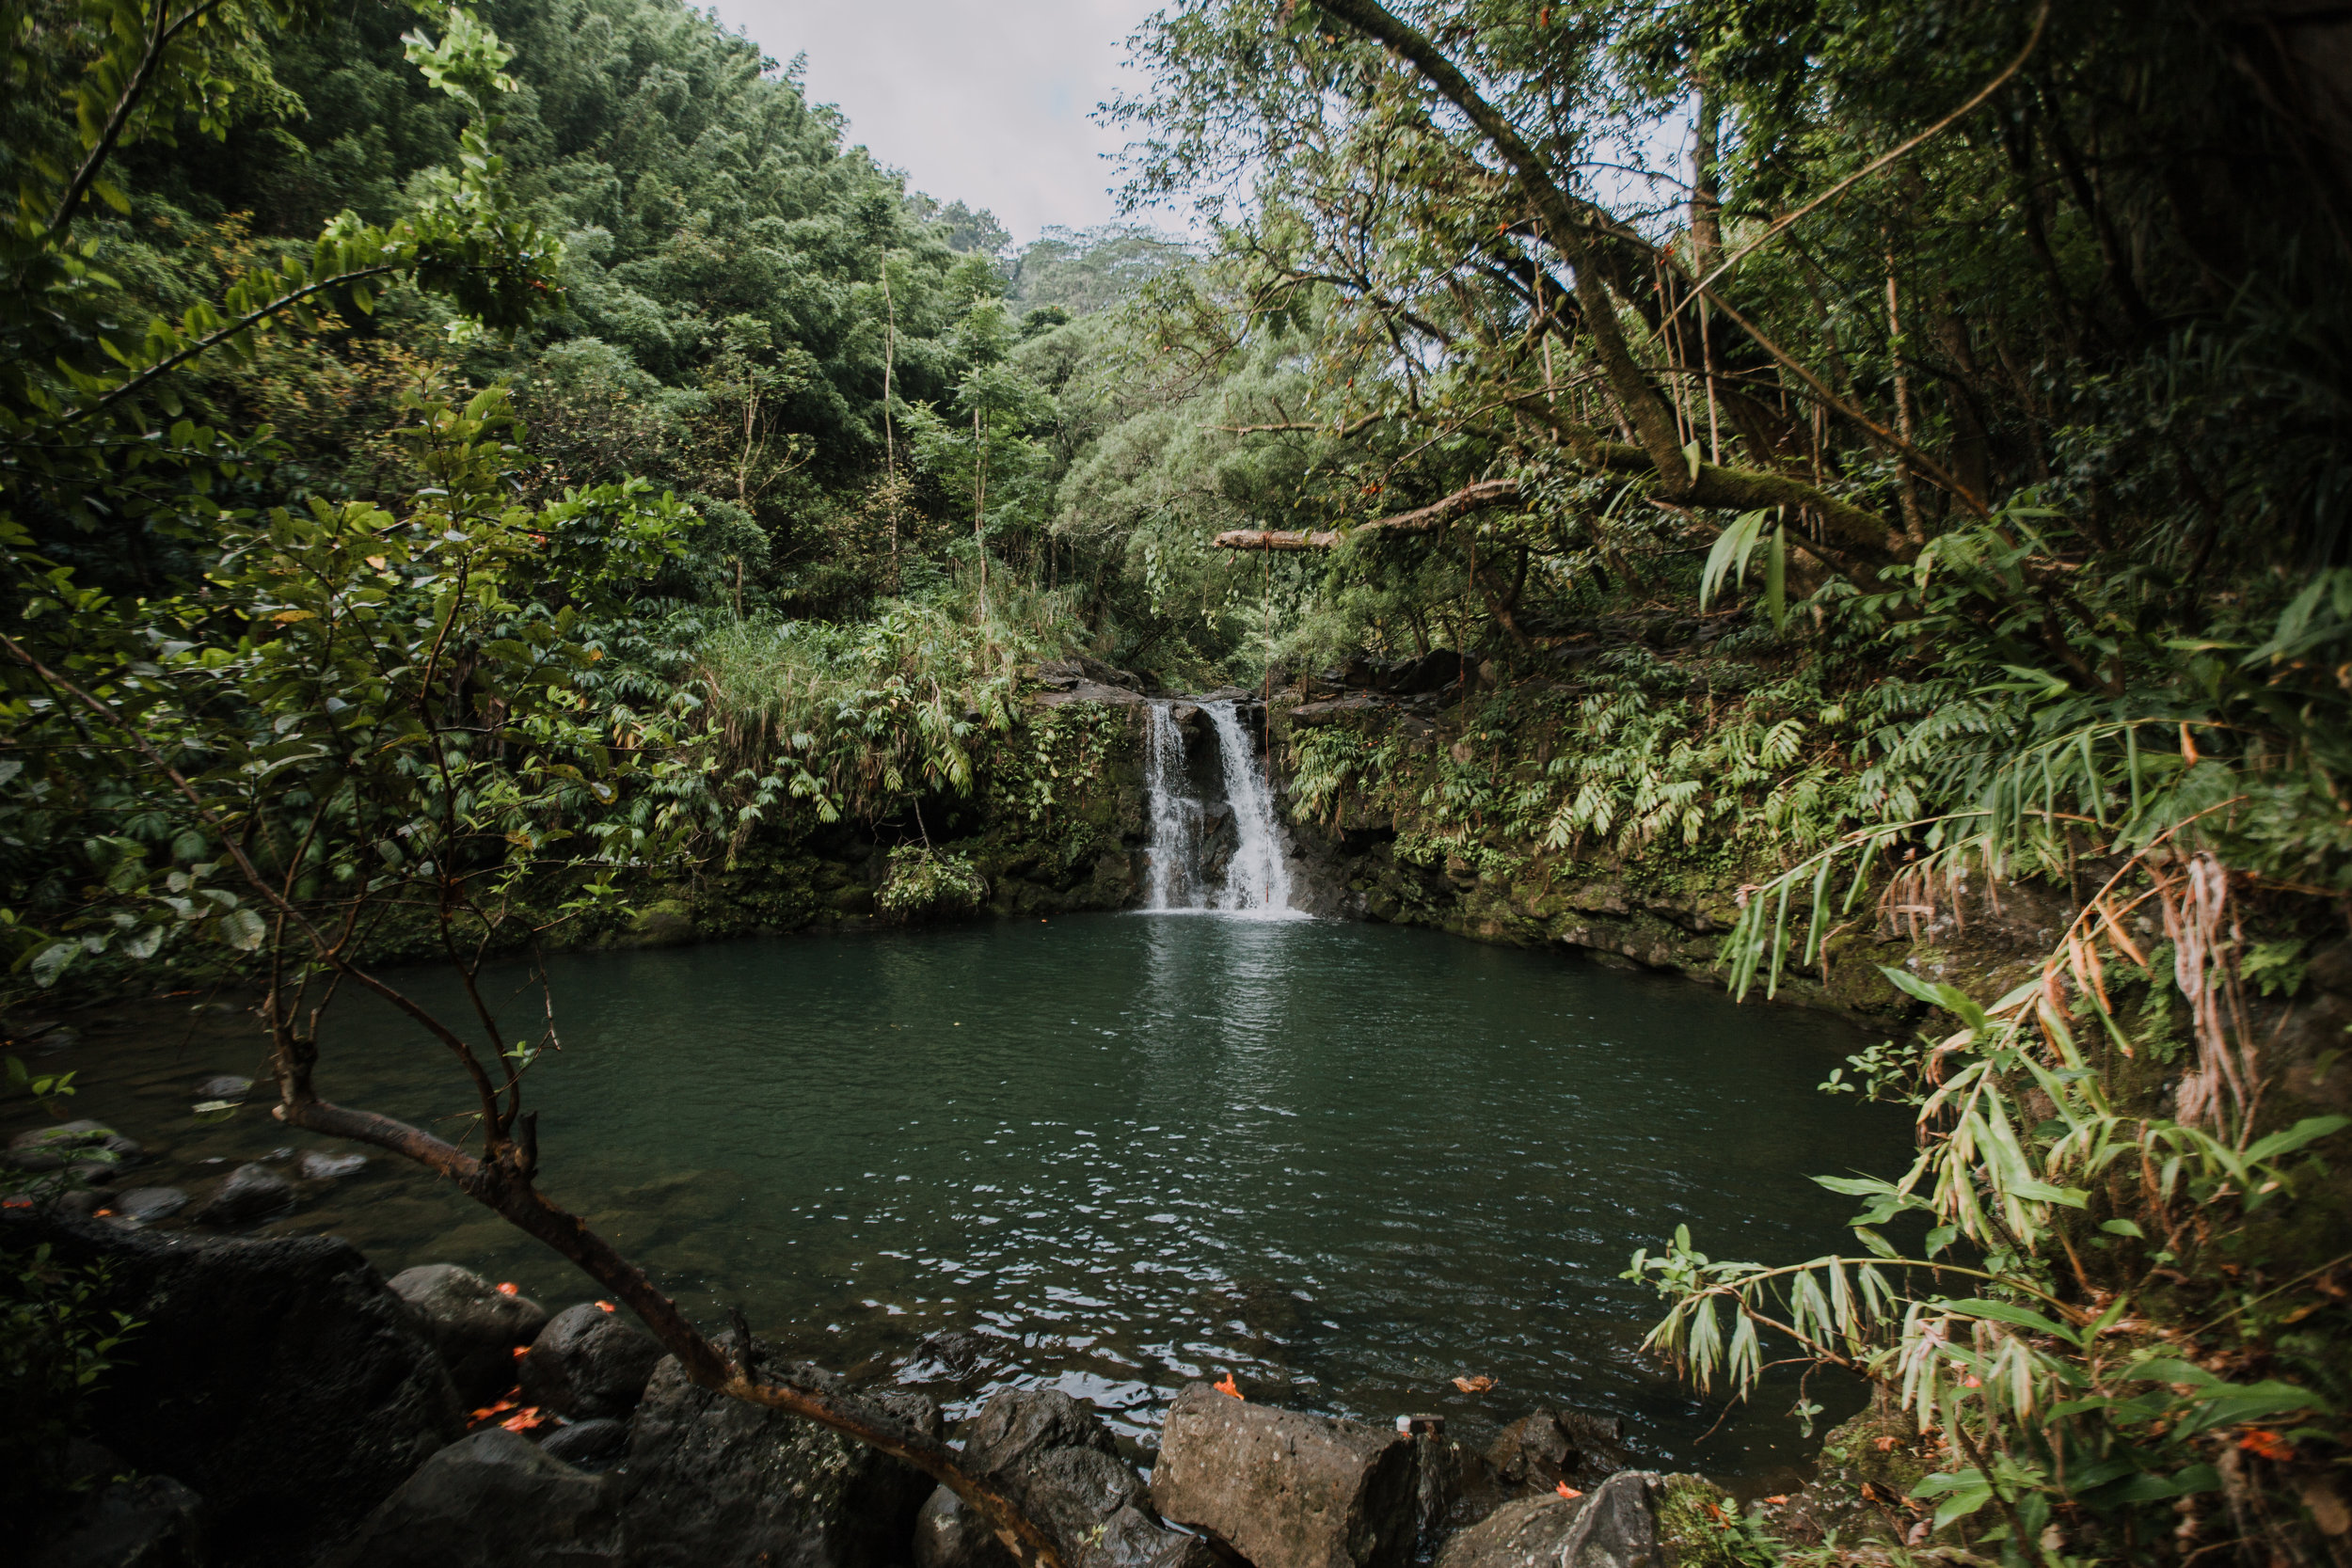 hawaii waterfall, road to hana, maui waterfall, hawaii wedding photographer, hawaii elopement photographer, maui wedding, maui engagements, maui elopement